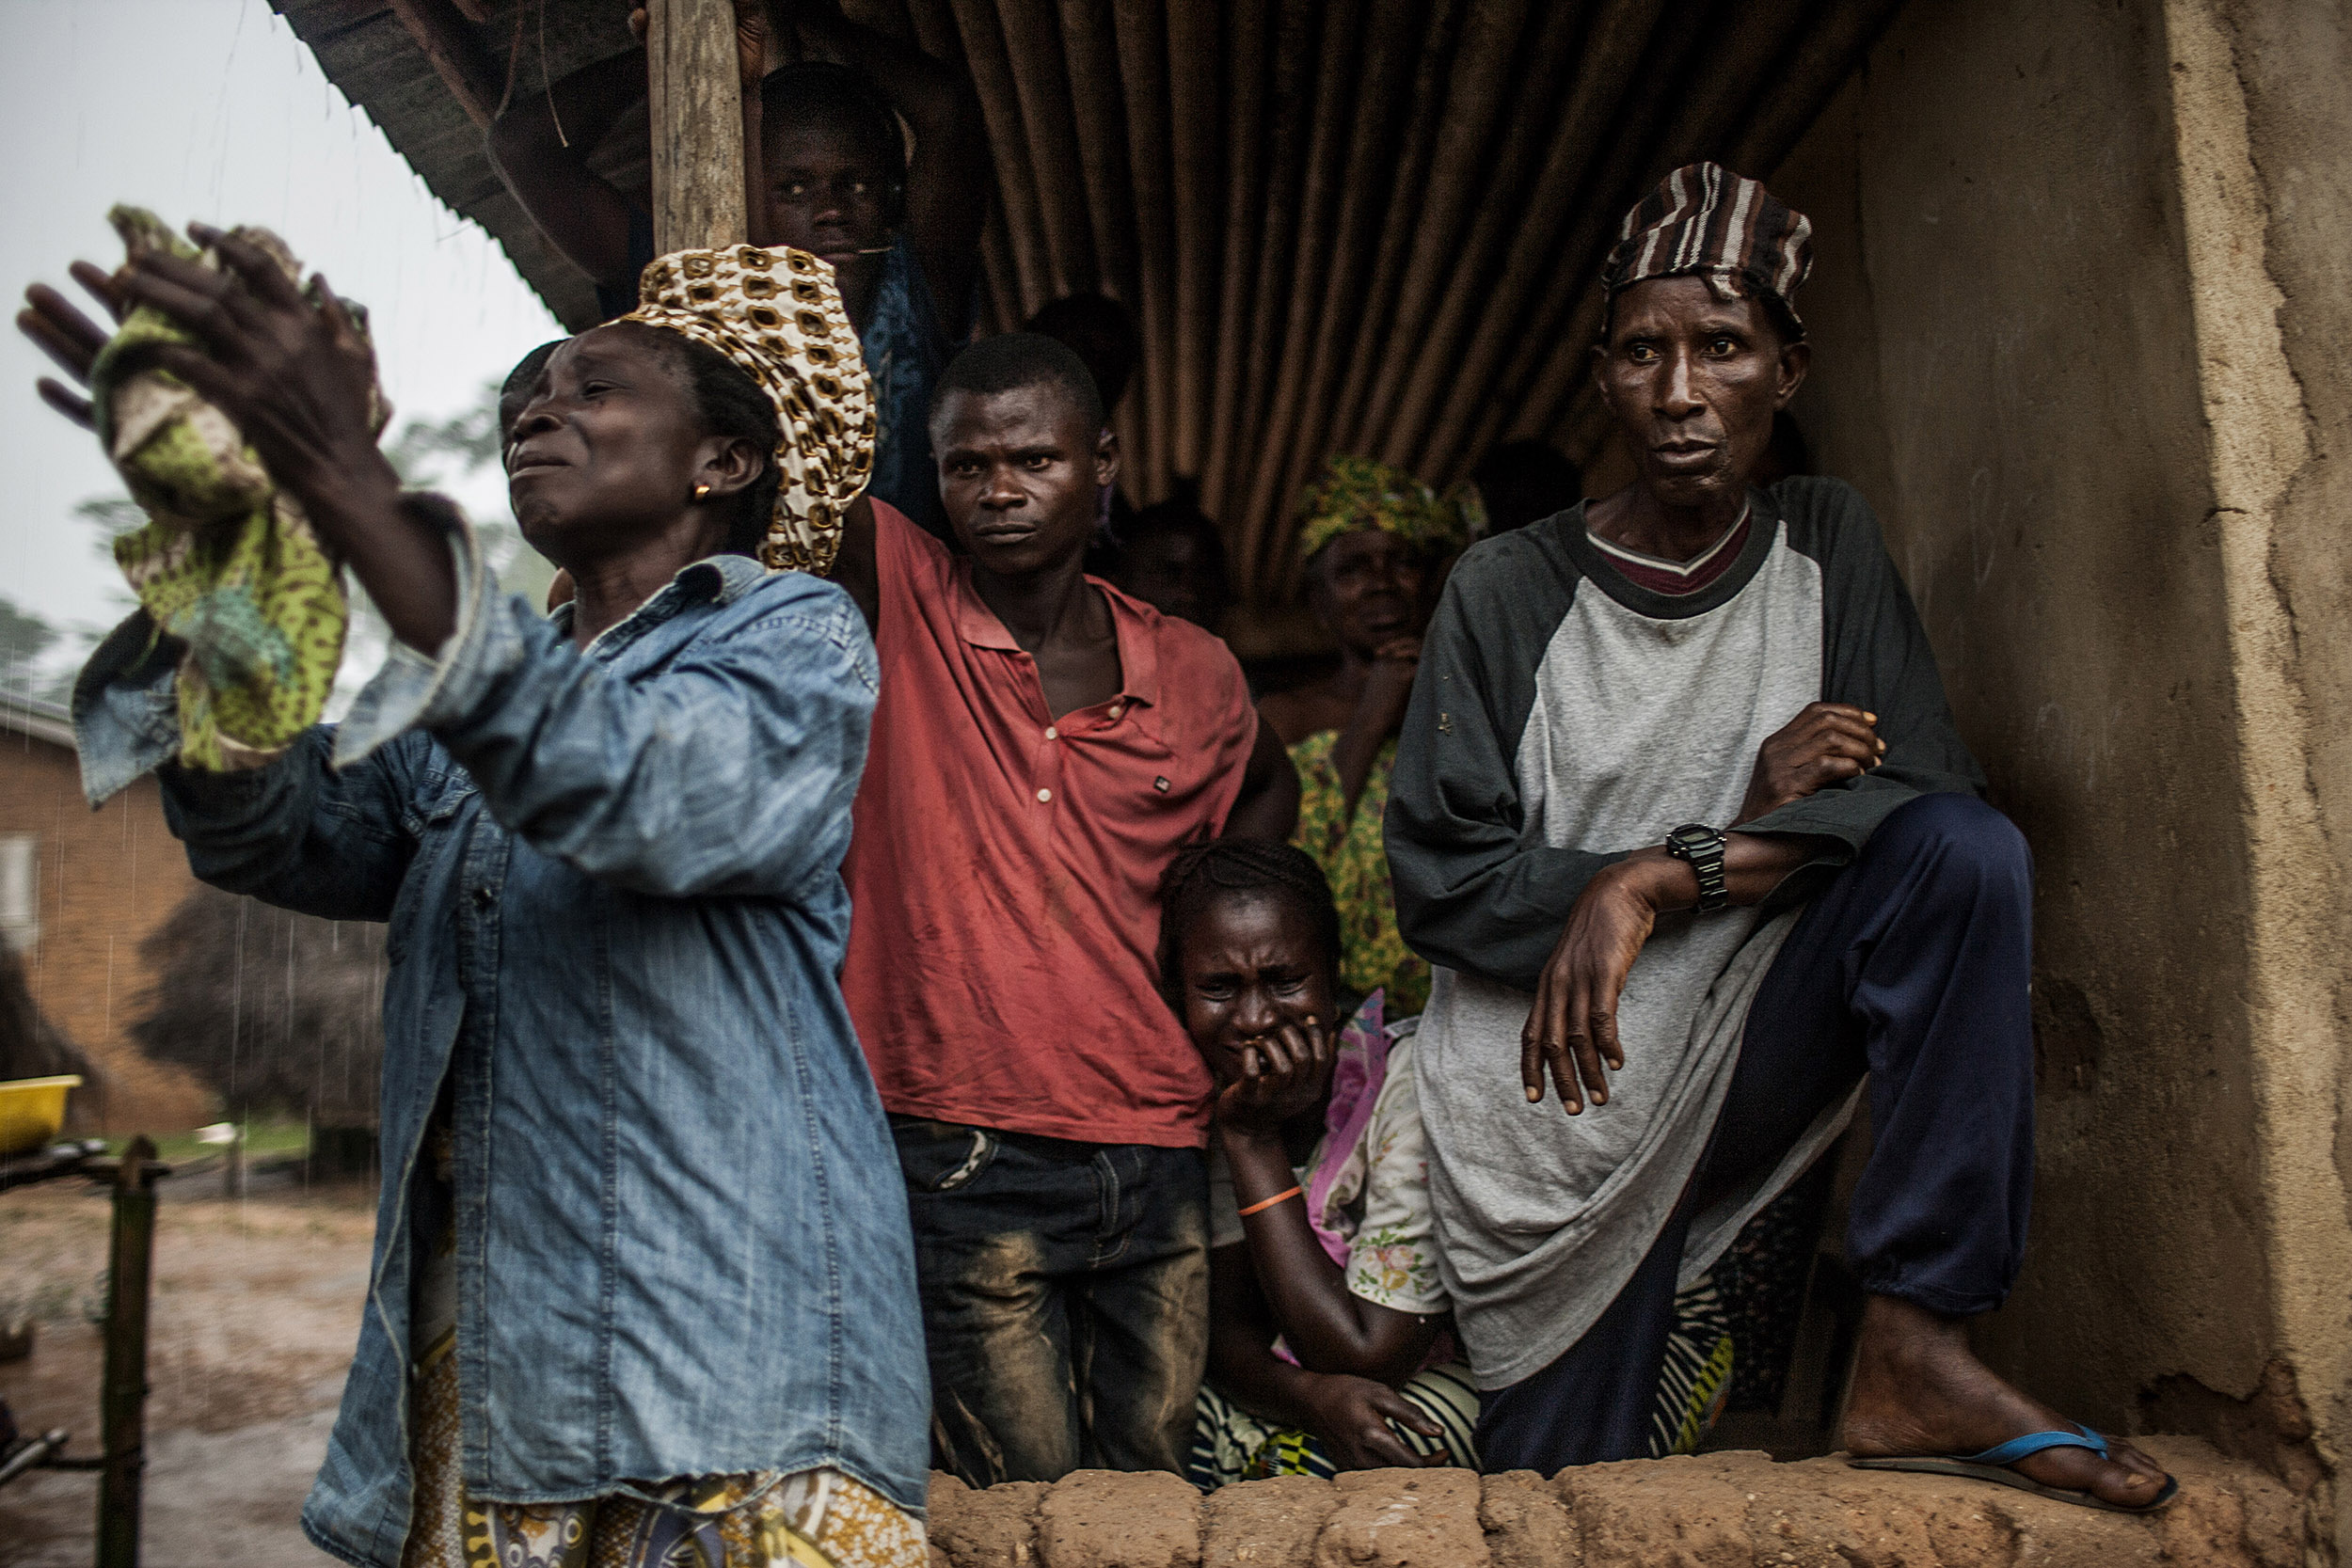 """<b>Pete Muller, Aug. 26, 2014. Sengema, Sierra Leone.</b>""""The rain started shortly after a small team of Red Cross burial workers approached the body. The deceased man, reportedly in his mid-sixties, collapsed and died outside his remote home more than a day before the burial team arrived. Having received instructions from officials that bodies of Ebola victims are extremely contagious, his family members placed a sheet over his body, marked a cordon in the sand, and called the Red Cross. With approximately 20 burial workers serving all of Kailahun district, an area the size of Rhode Island and rife with Ebola, the team had a backlog of cases. His family endured the presence of his body, laying prone and exposed to the elements, for more than 24 hours. As the team removed the sheet, the stench of death filled the air. The white cloth around the man's head was crimson with blood. As burial workers sprayed him with chlorine, family members erupted with emotion. I was moved imagining how I might respond if I were in the situation. To me, this picture represents the range of Ebola's emotional impact. In the two women, we see the devastation and loss that the virus causes. In the faces of the men, we see a sense of despondence, disbelief and suspicion that also defines the response. It was a difficult but necessary picture to make."""""""